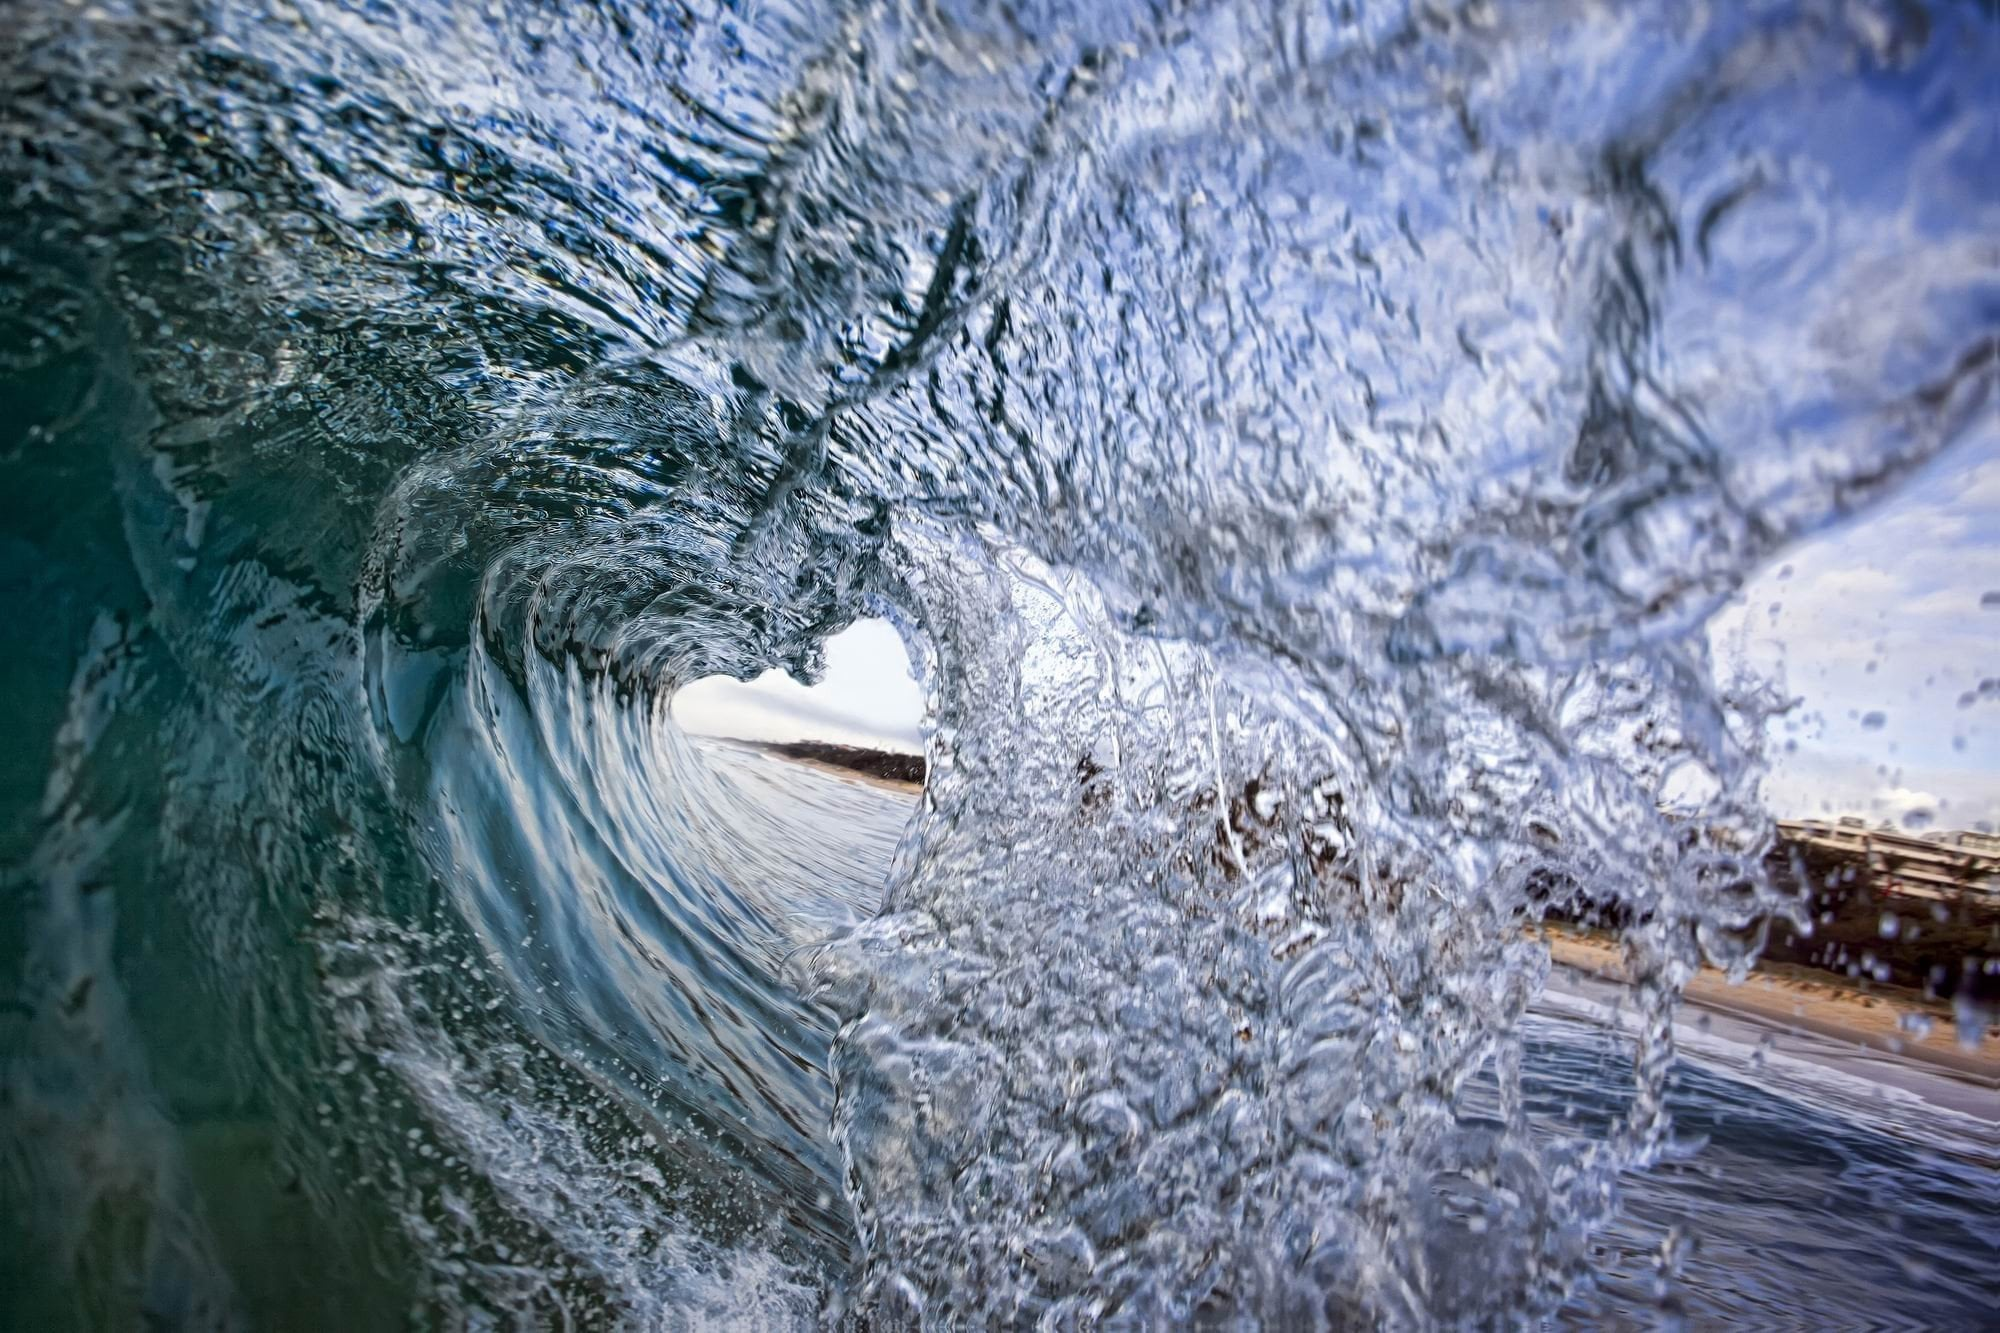 Crushing Wave - Photography Print on Canvas - Canvas Wall Art